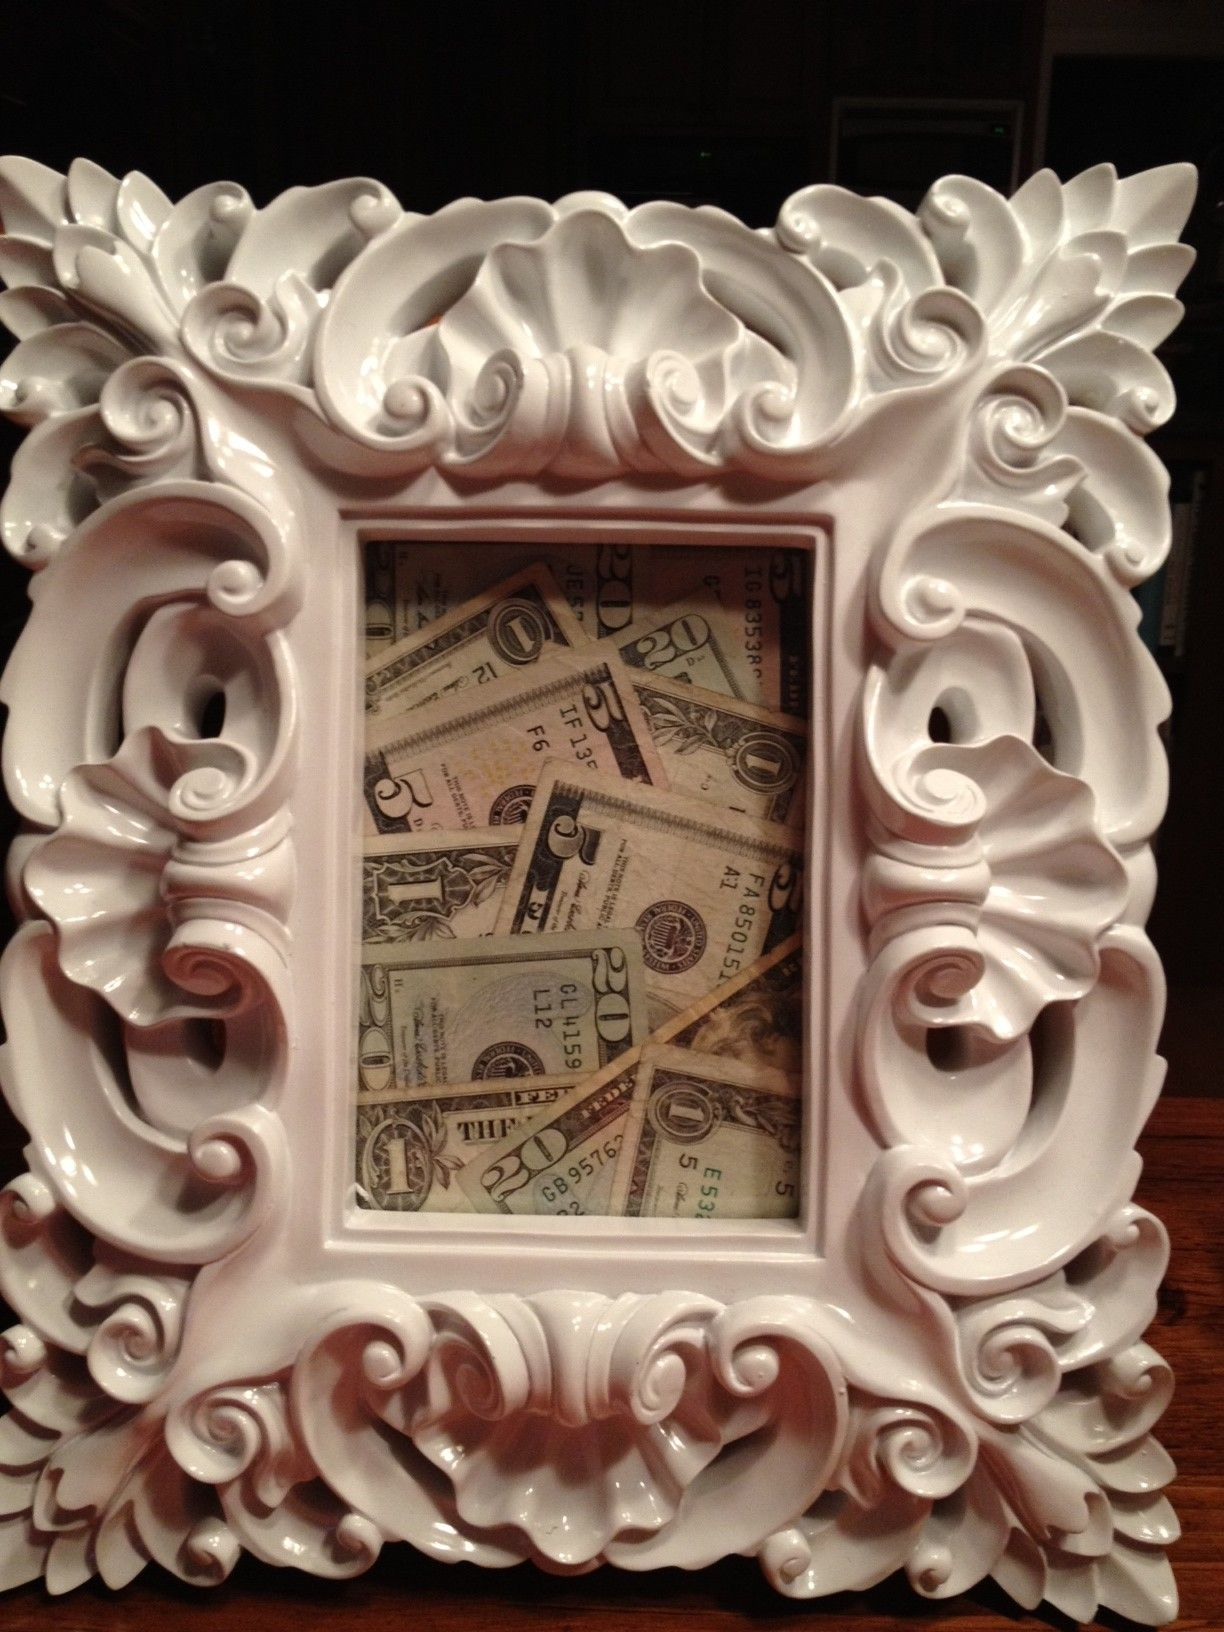 How To Give Money As A Wedding Gift: The Hi-brow Way To Give Money For A Wedding!